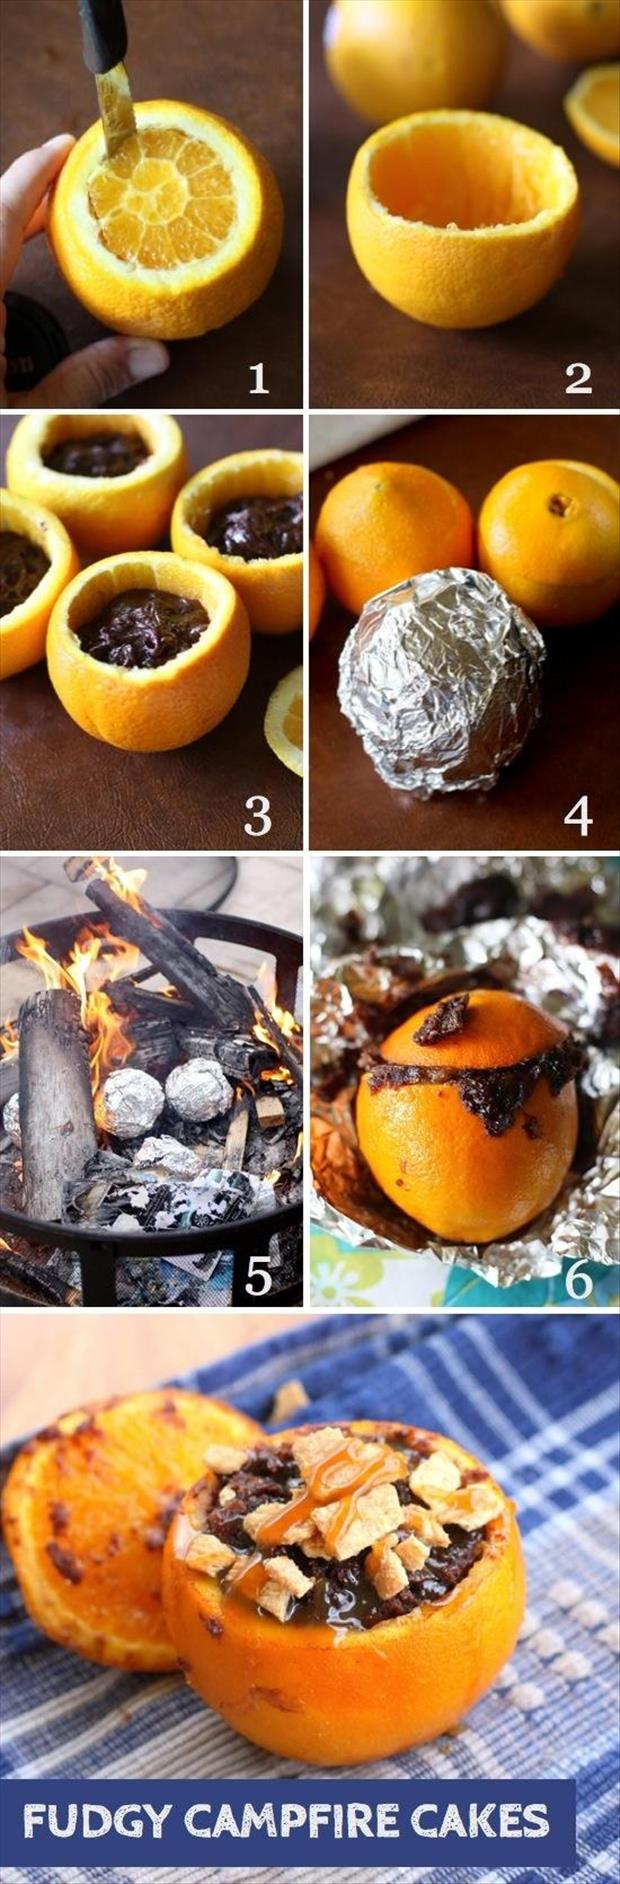 how to make fudge campfire cakes